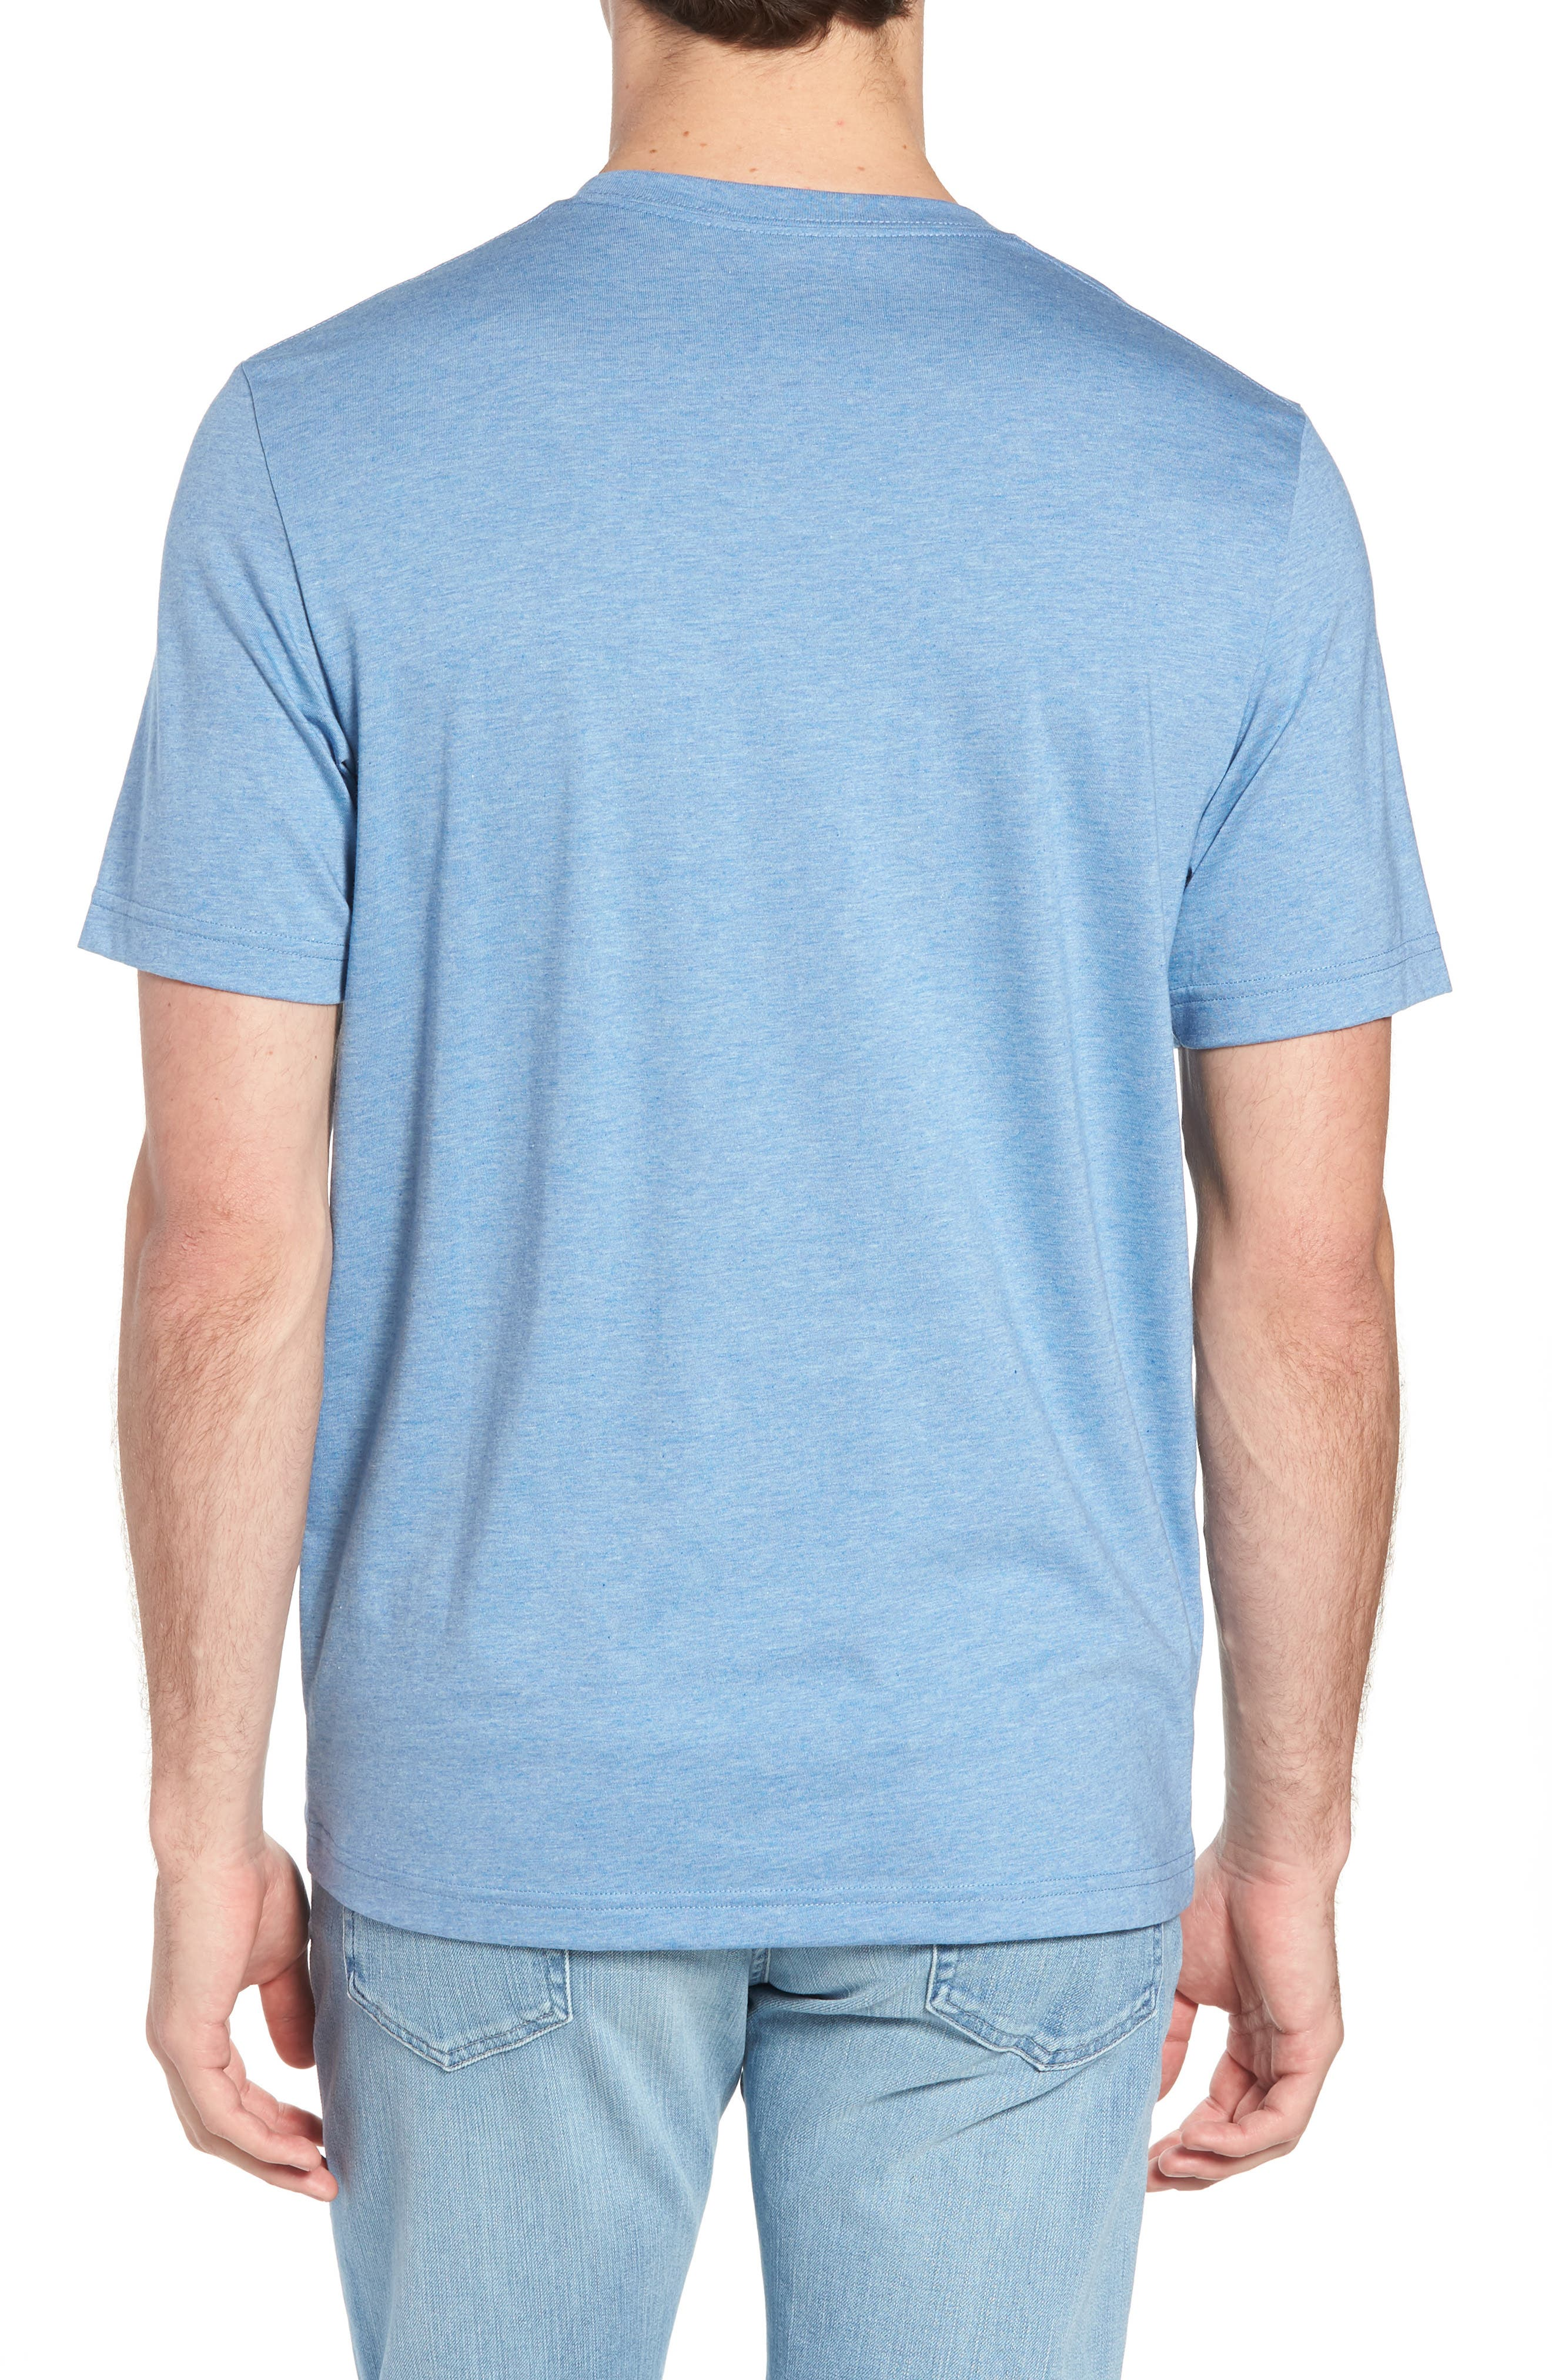 Dad Bod Regular Fit T-Shirt,                             Alternate thumbnail 2, color,                             400